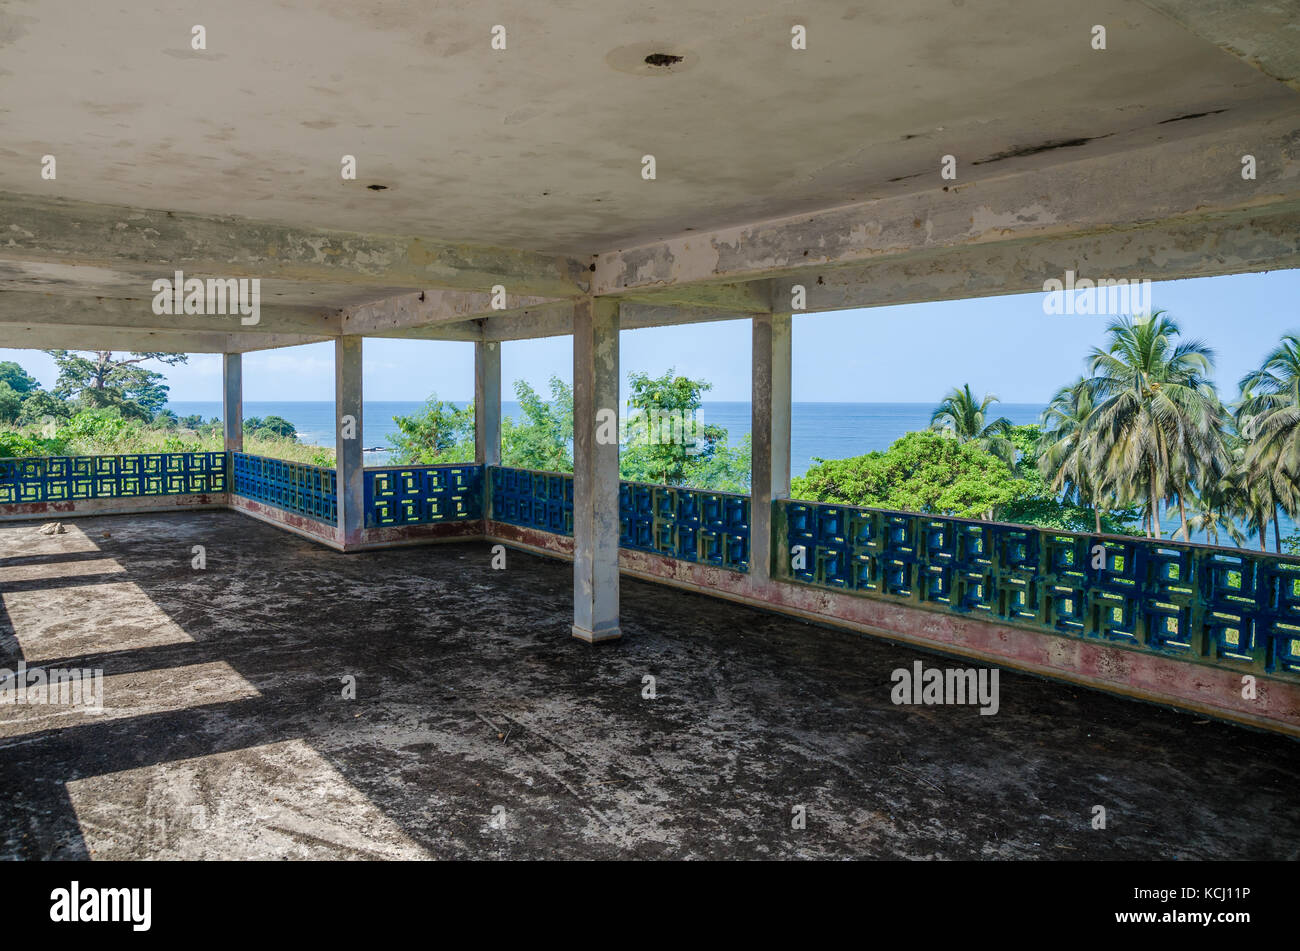 Abandoned luxury lodge with terrasse overlooking ocean, traces of civil war, Robertsport, Liberia, West Africa - Stock Image